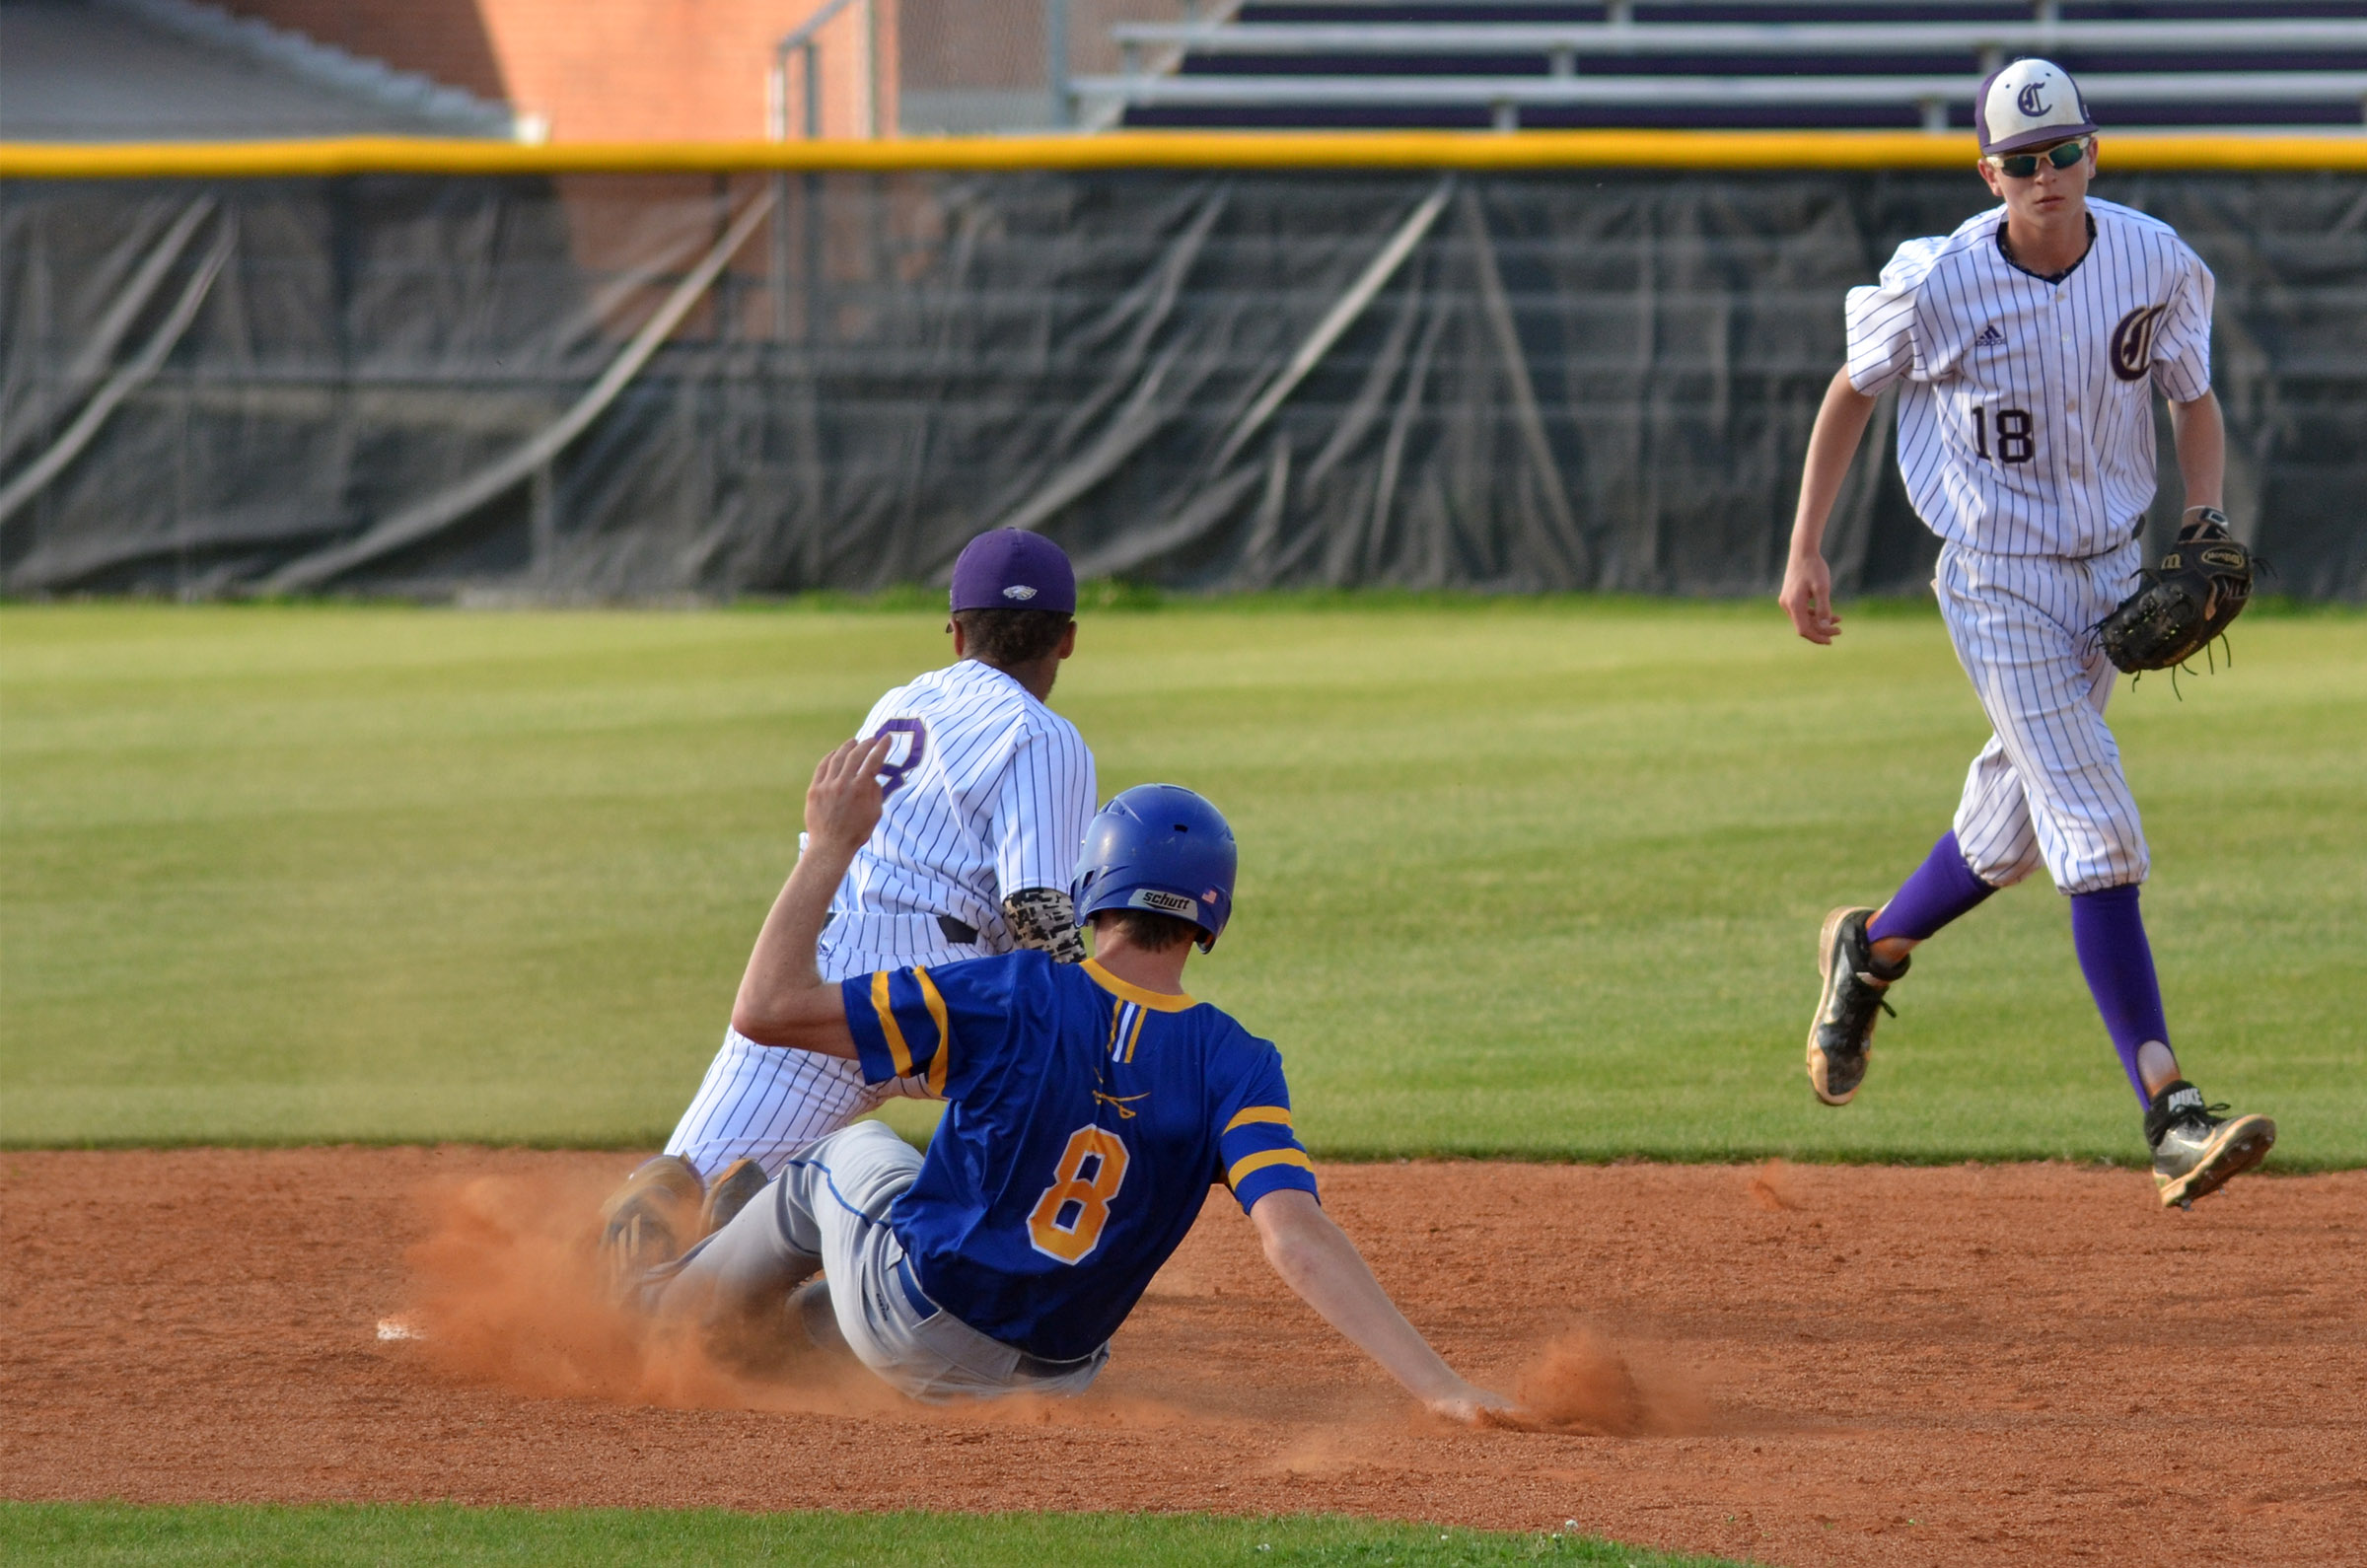 CHS junior Ethan Lay gets an out at second, with help from freshman Noah Hughes.